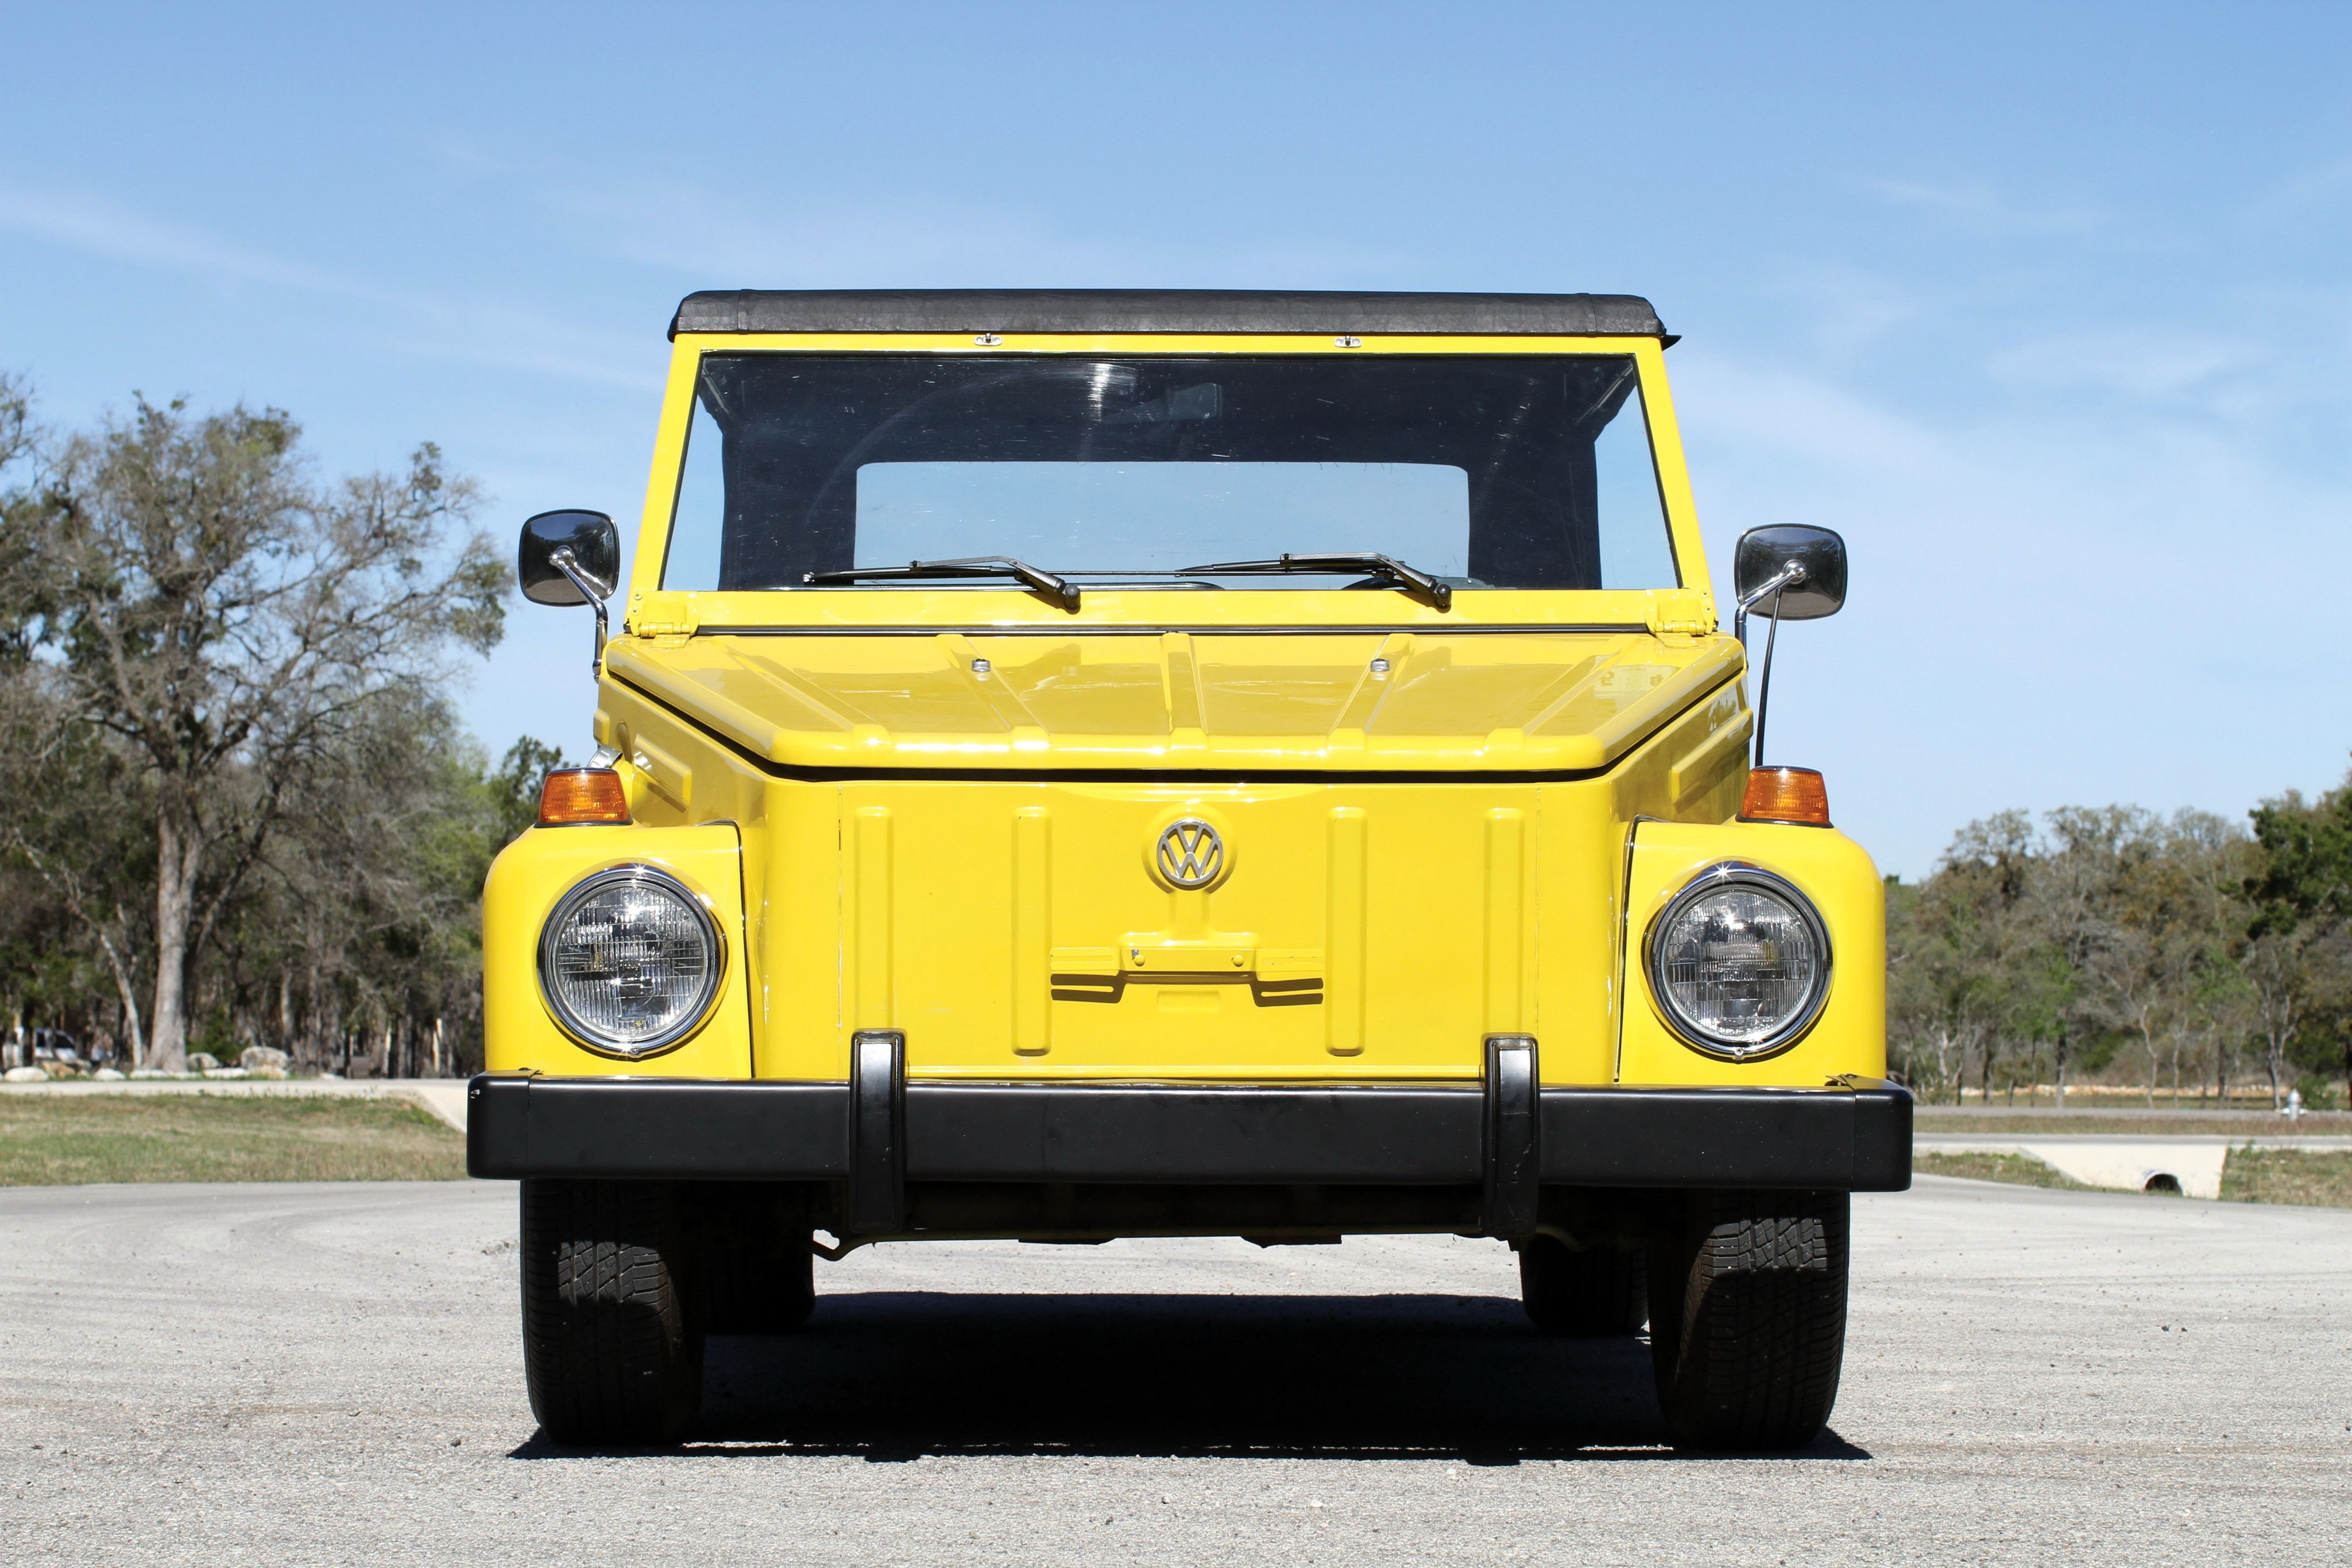 1974 Volkswagen The Thing Type 181 Cars Classic Convertible Wallpaper 4096x2731 923332 Wallpaperup